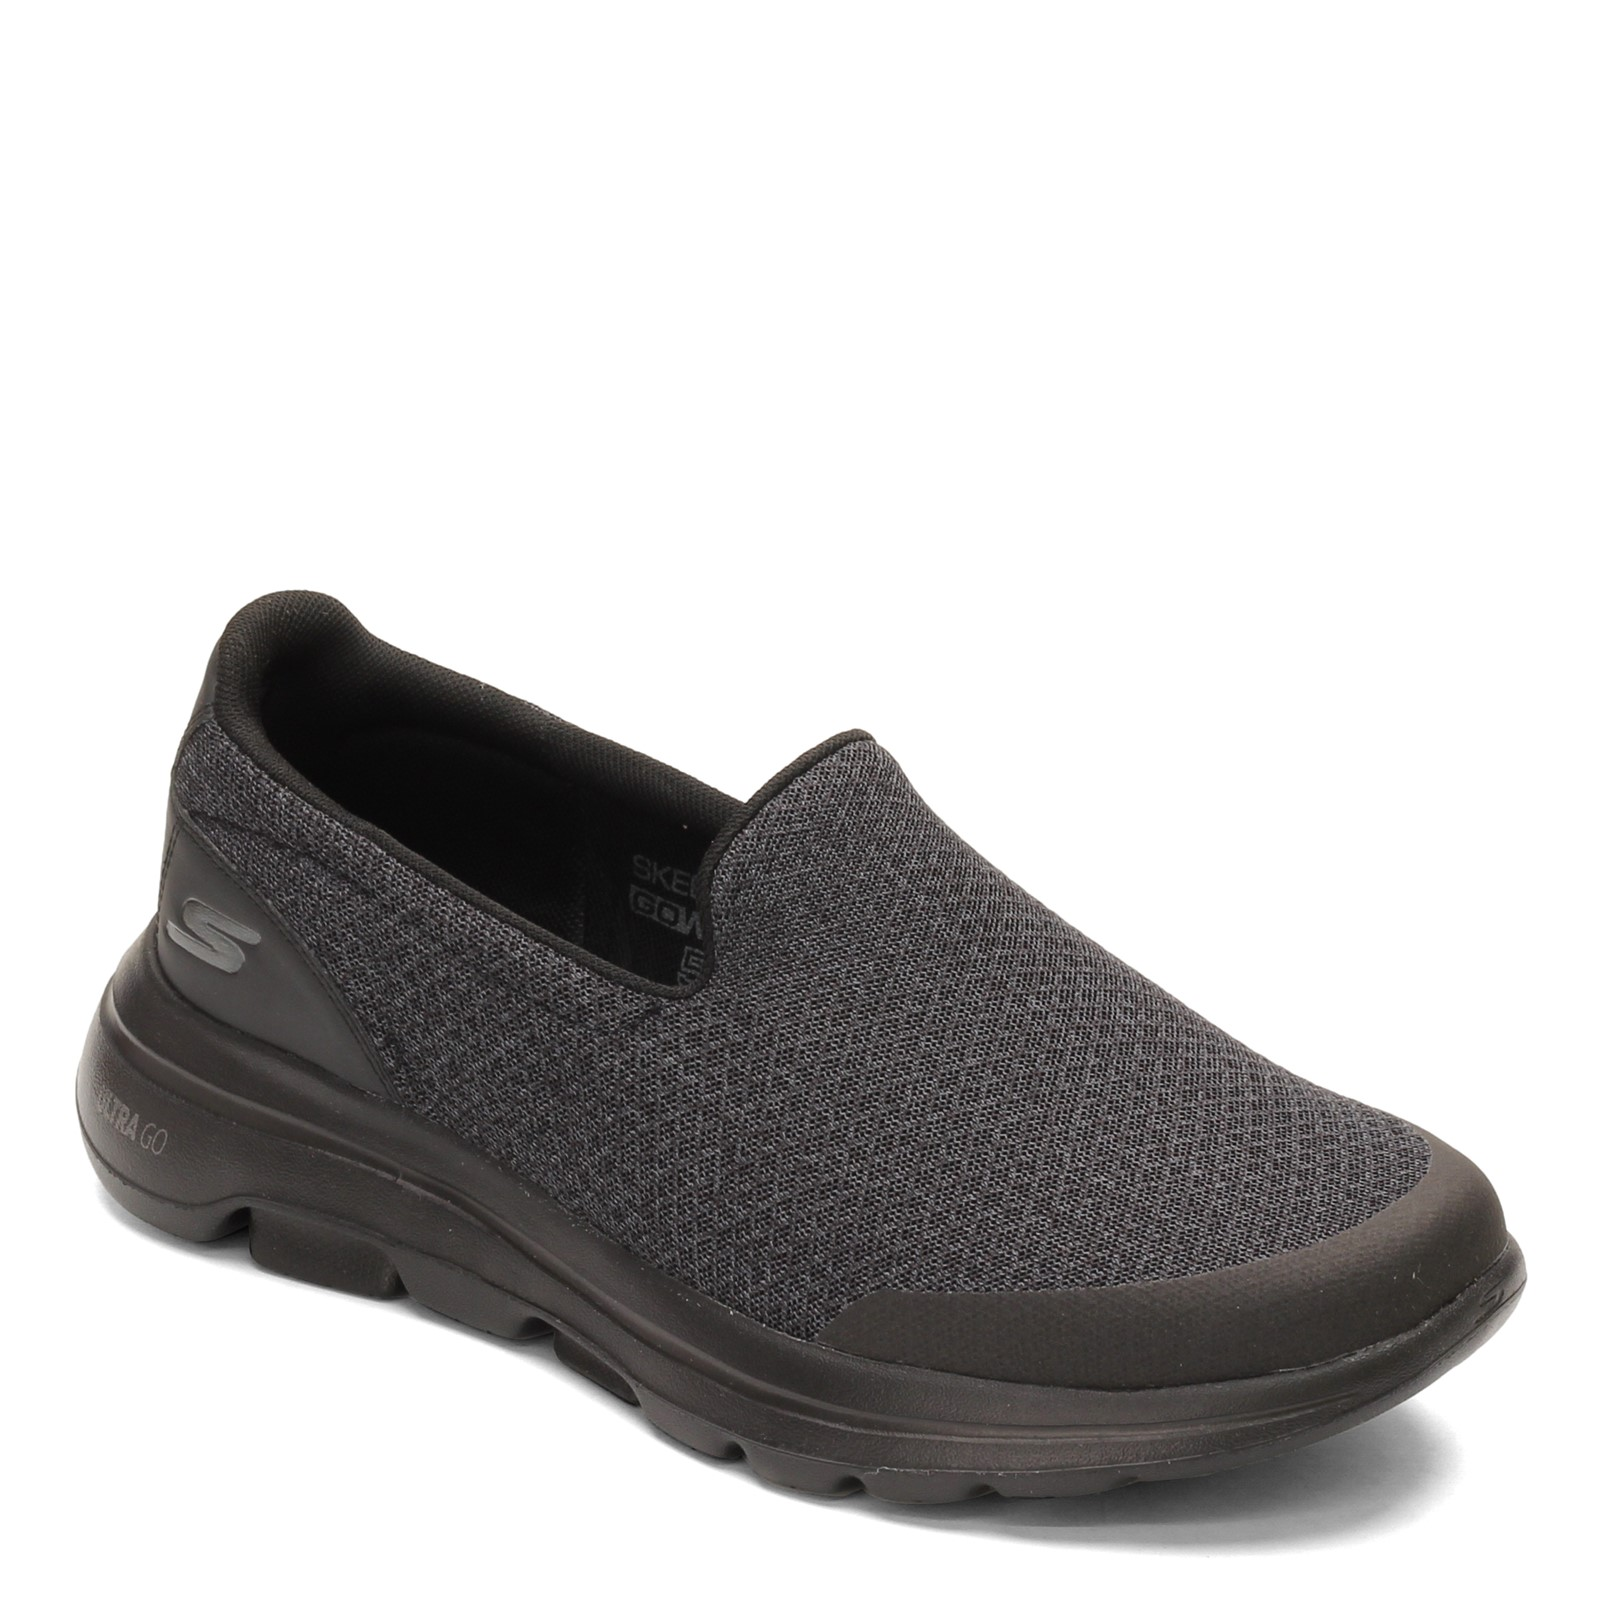 Men's Skechers, GOwalk 5 - Sparrow Slip On